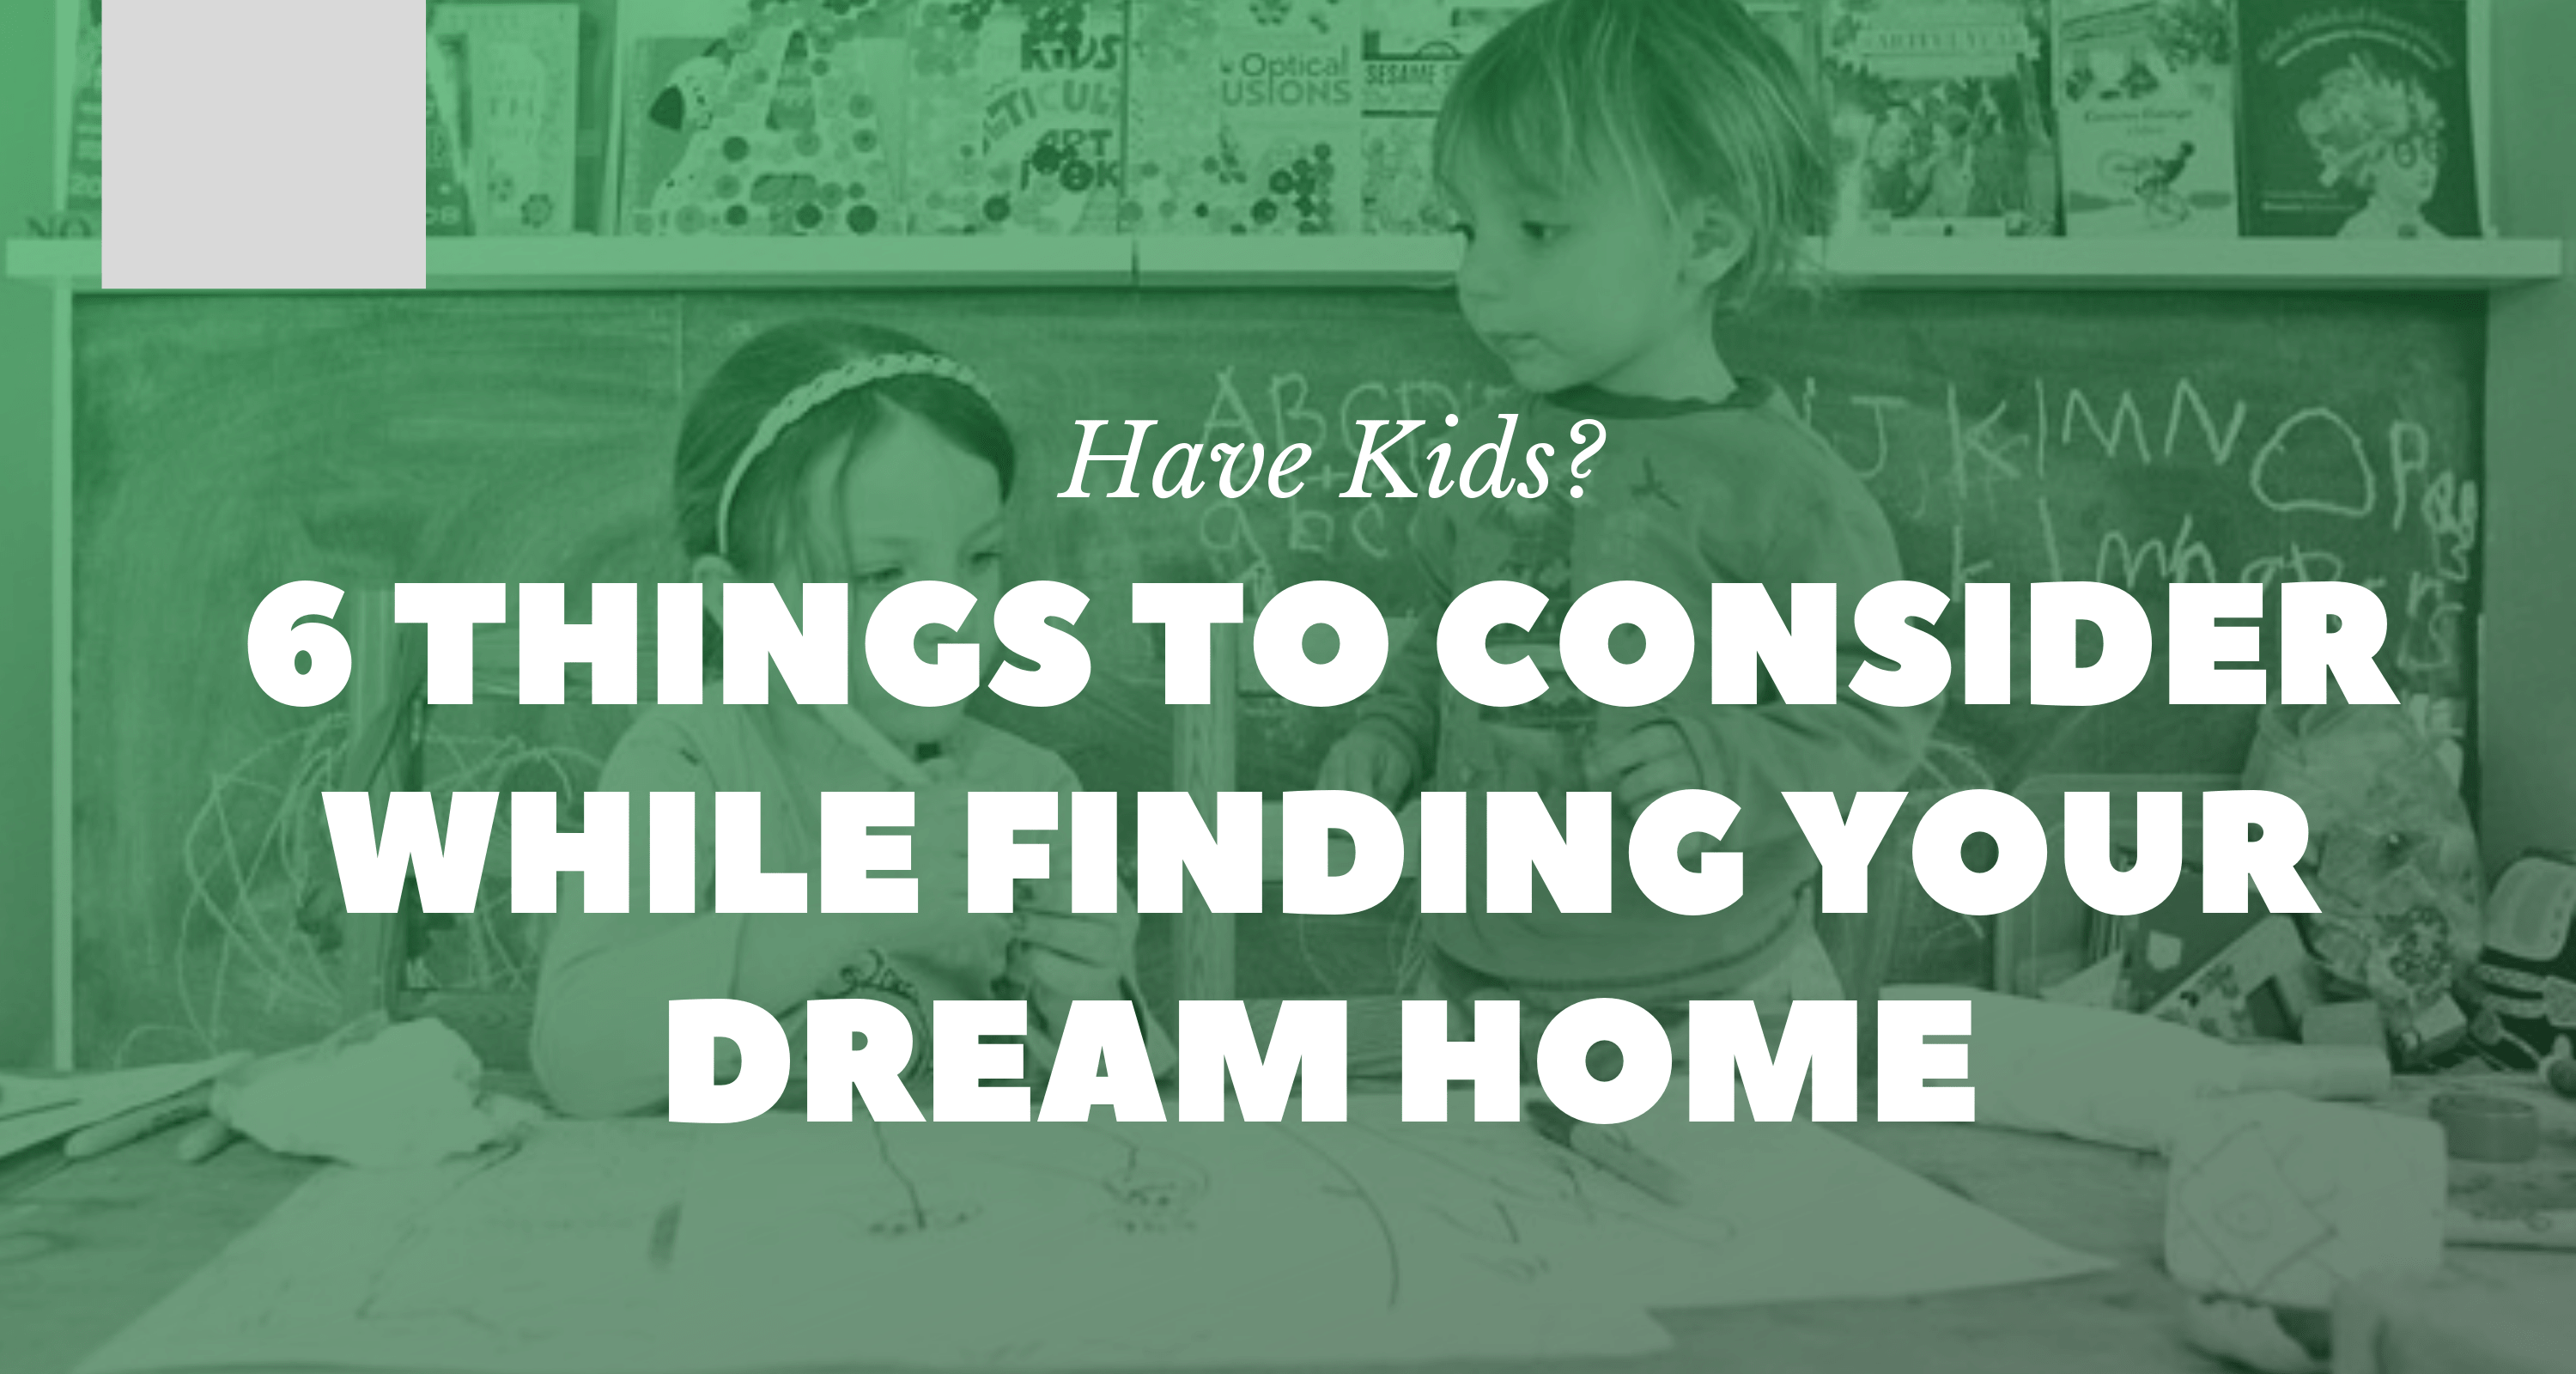 Have Kids? 6 Things To Consider While Finding Your Dream Home